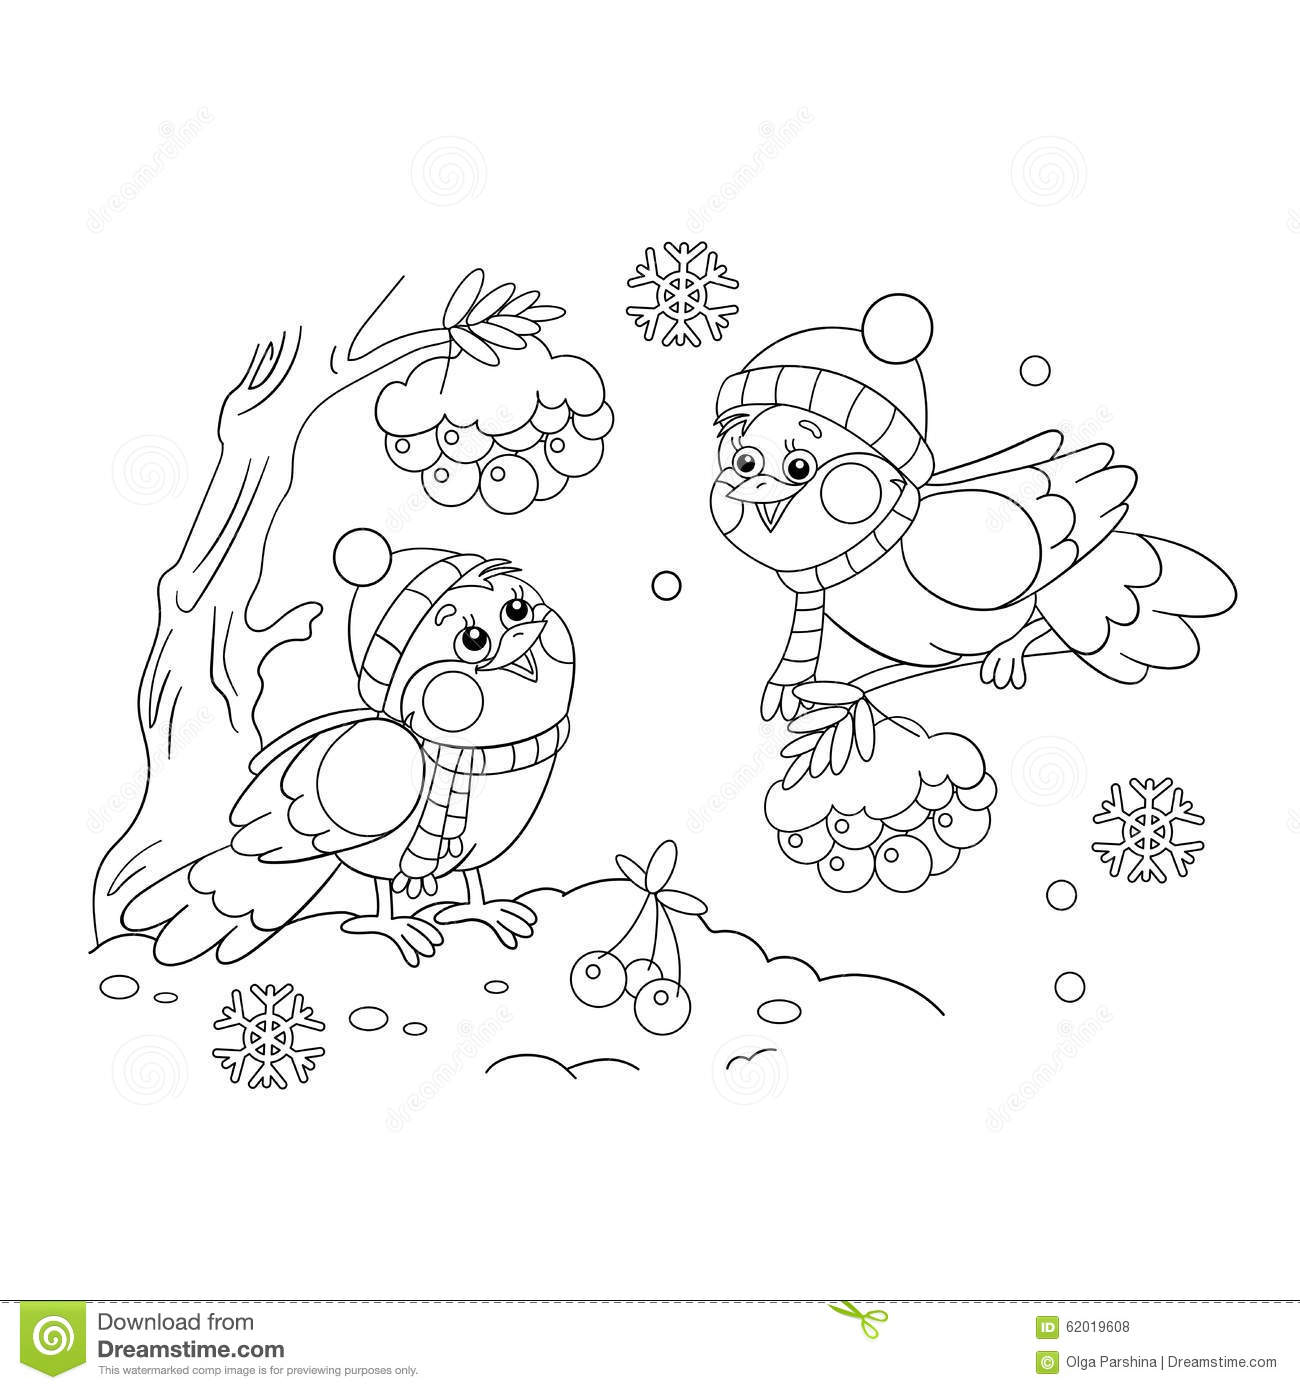 Coloring Page Outline Of Funny Birds In Winter Stock Vector ...